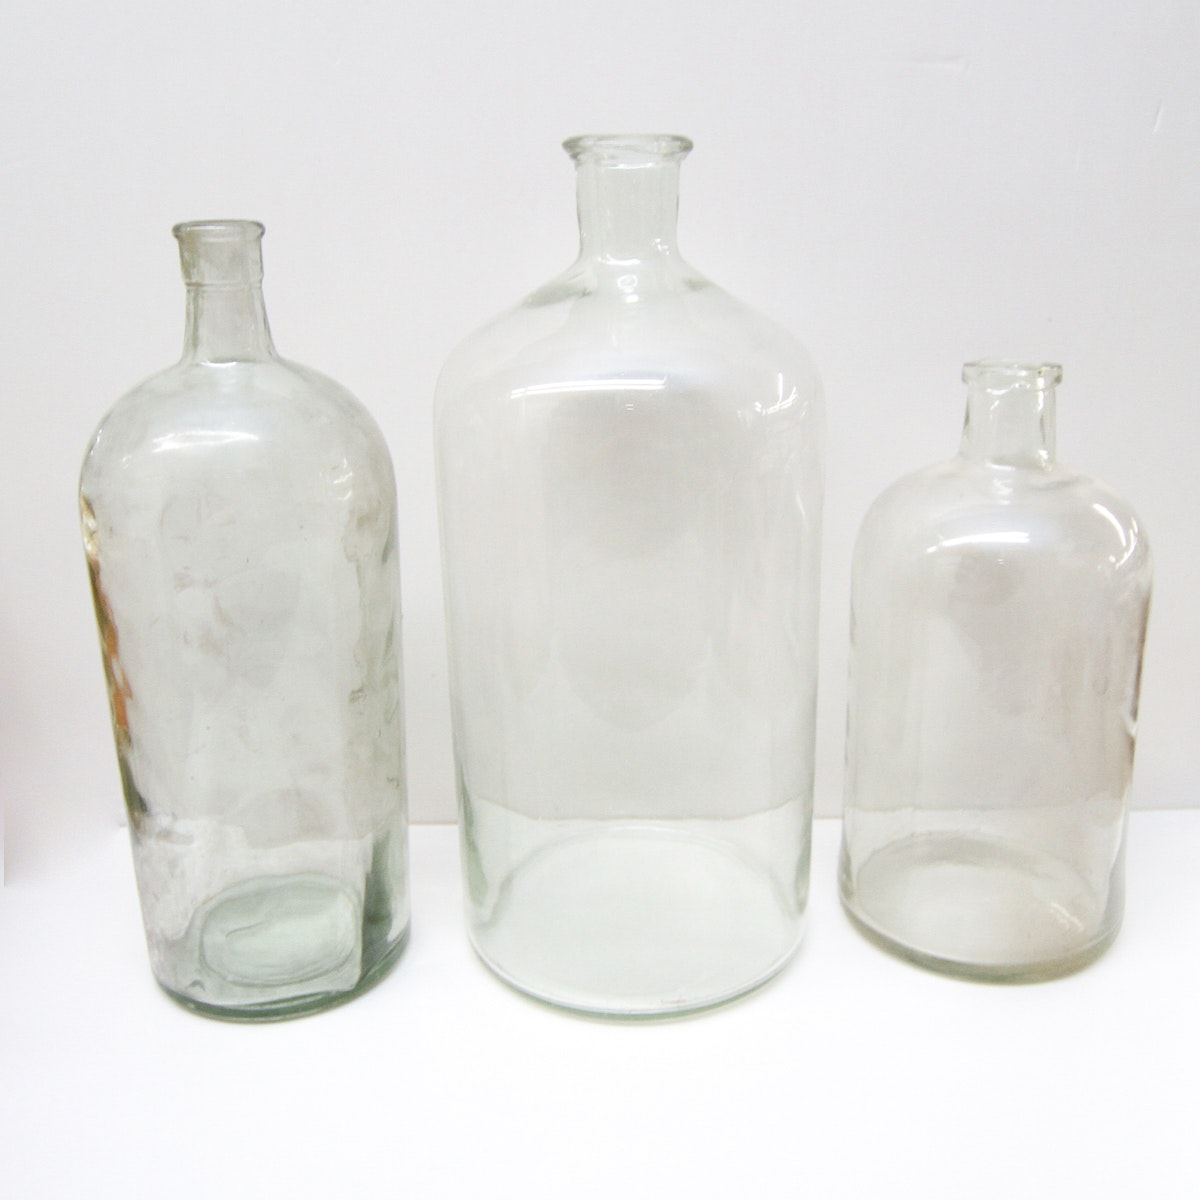 Collection of 1920s Bottles